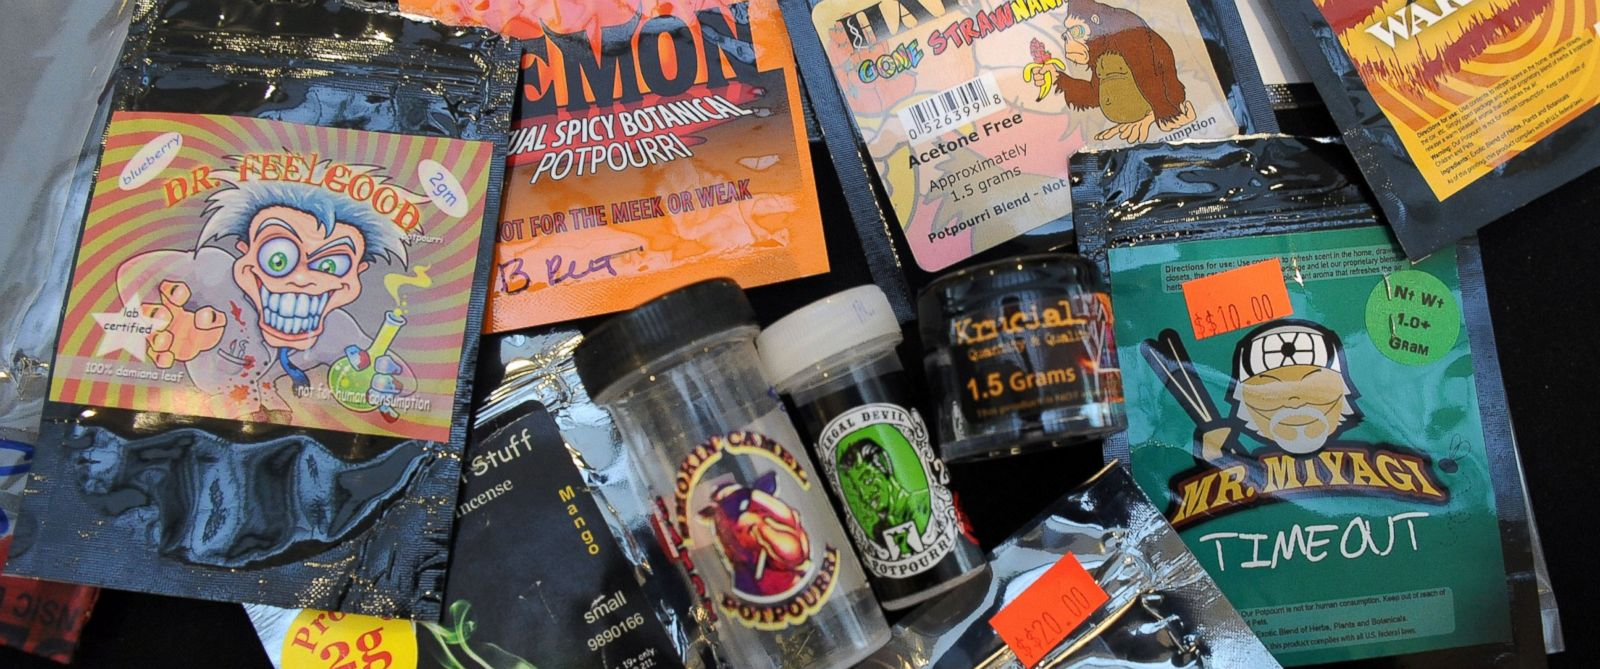 Synthetic marijuana is very harmful to the body